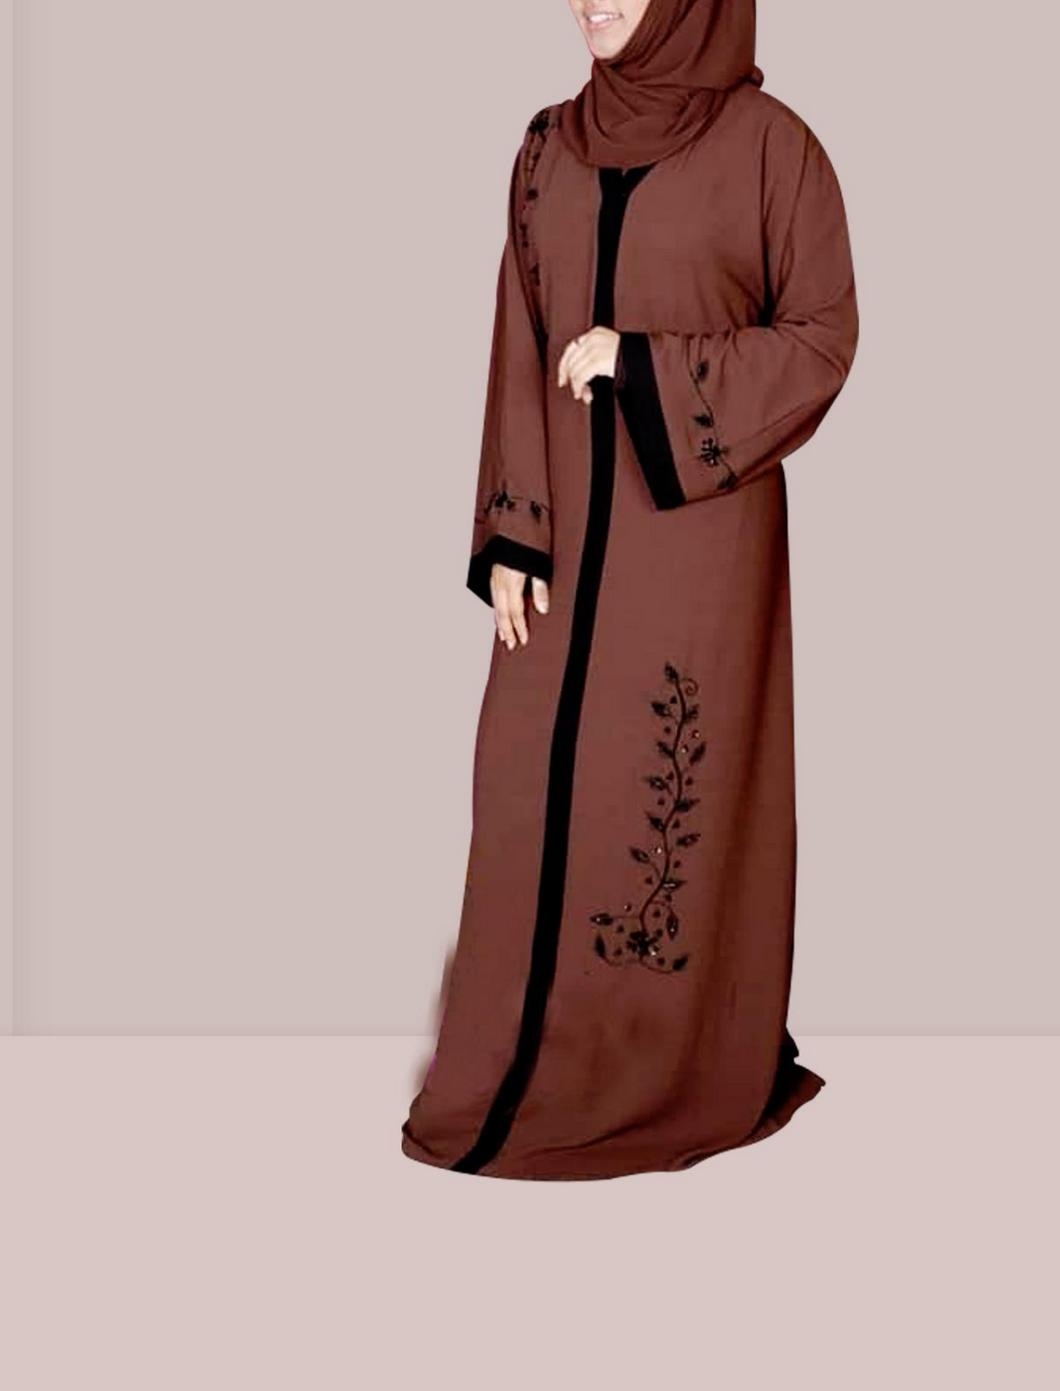 Women's Islamic  Abaya / Burqa Dress, Coffee Colour Simple Latest Design Stylish Ladies Pardha Dress - Model R1A-117-CF